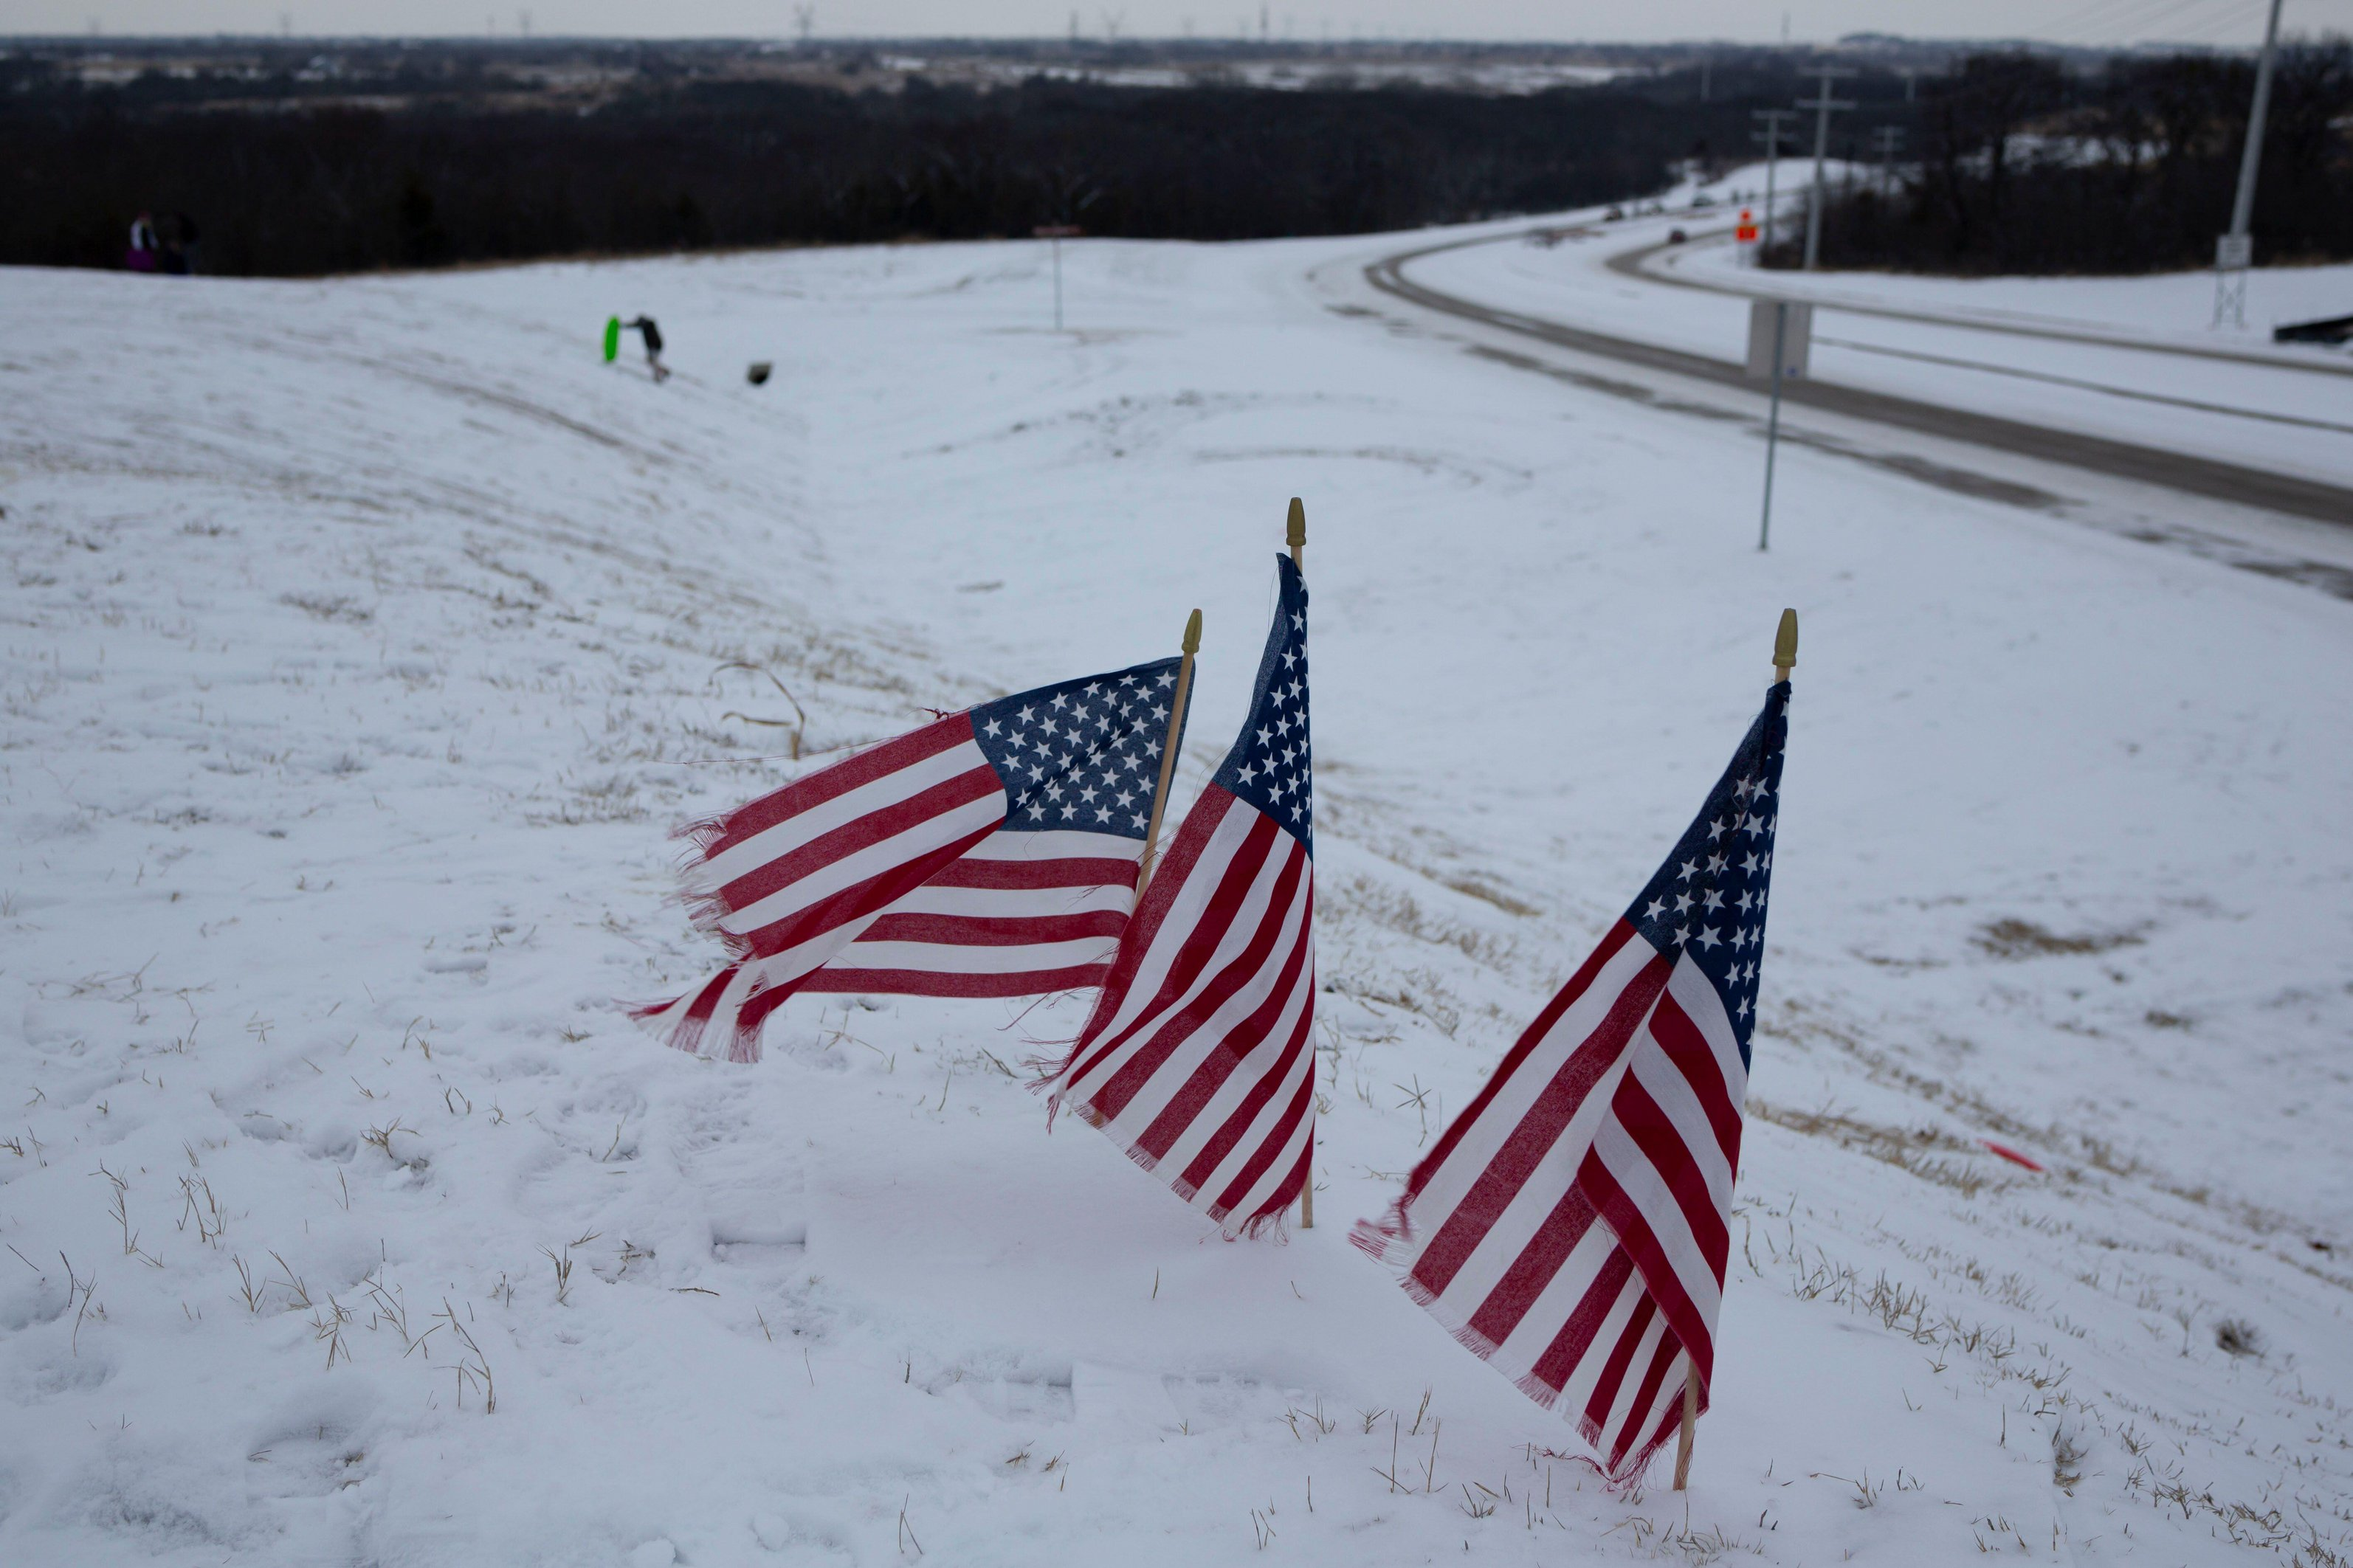 Wintry weather has been taking over southern states in the US